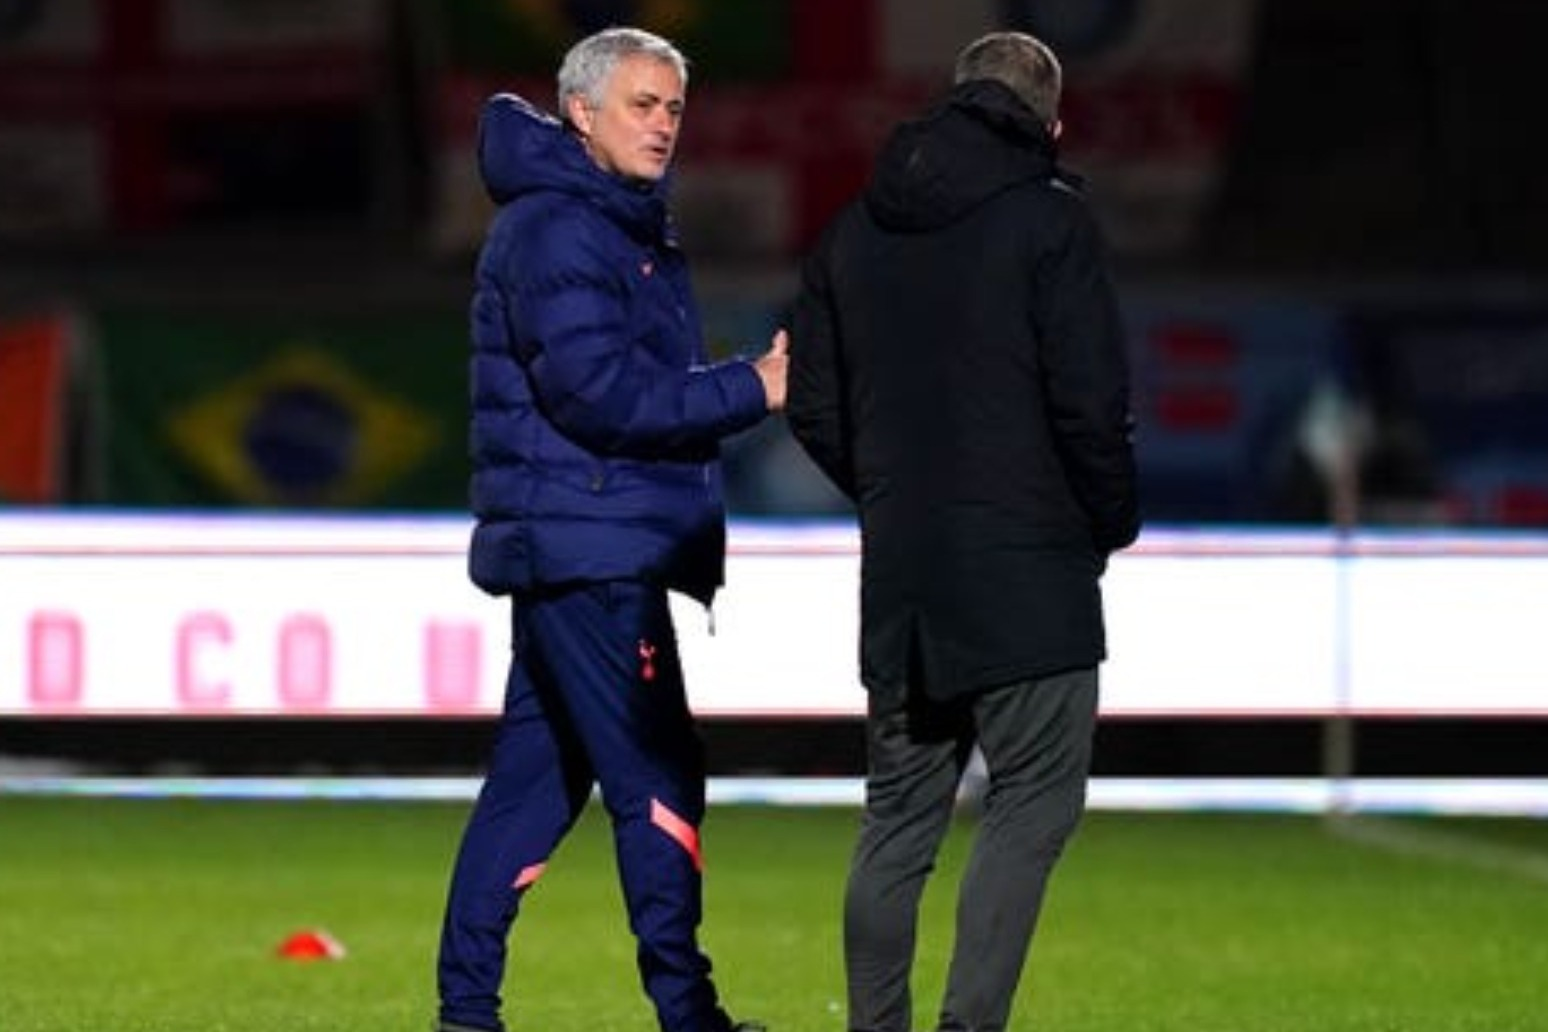 Jose Mourinho relieved after late show sees Tottenham past Wycombe in FA Cup